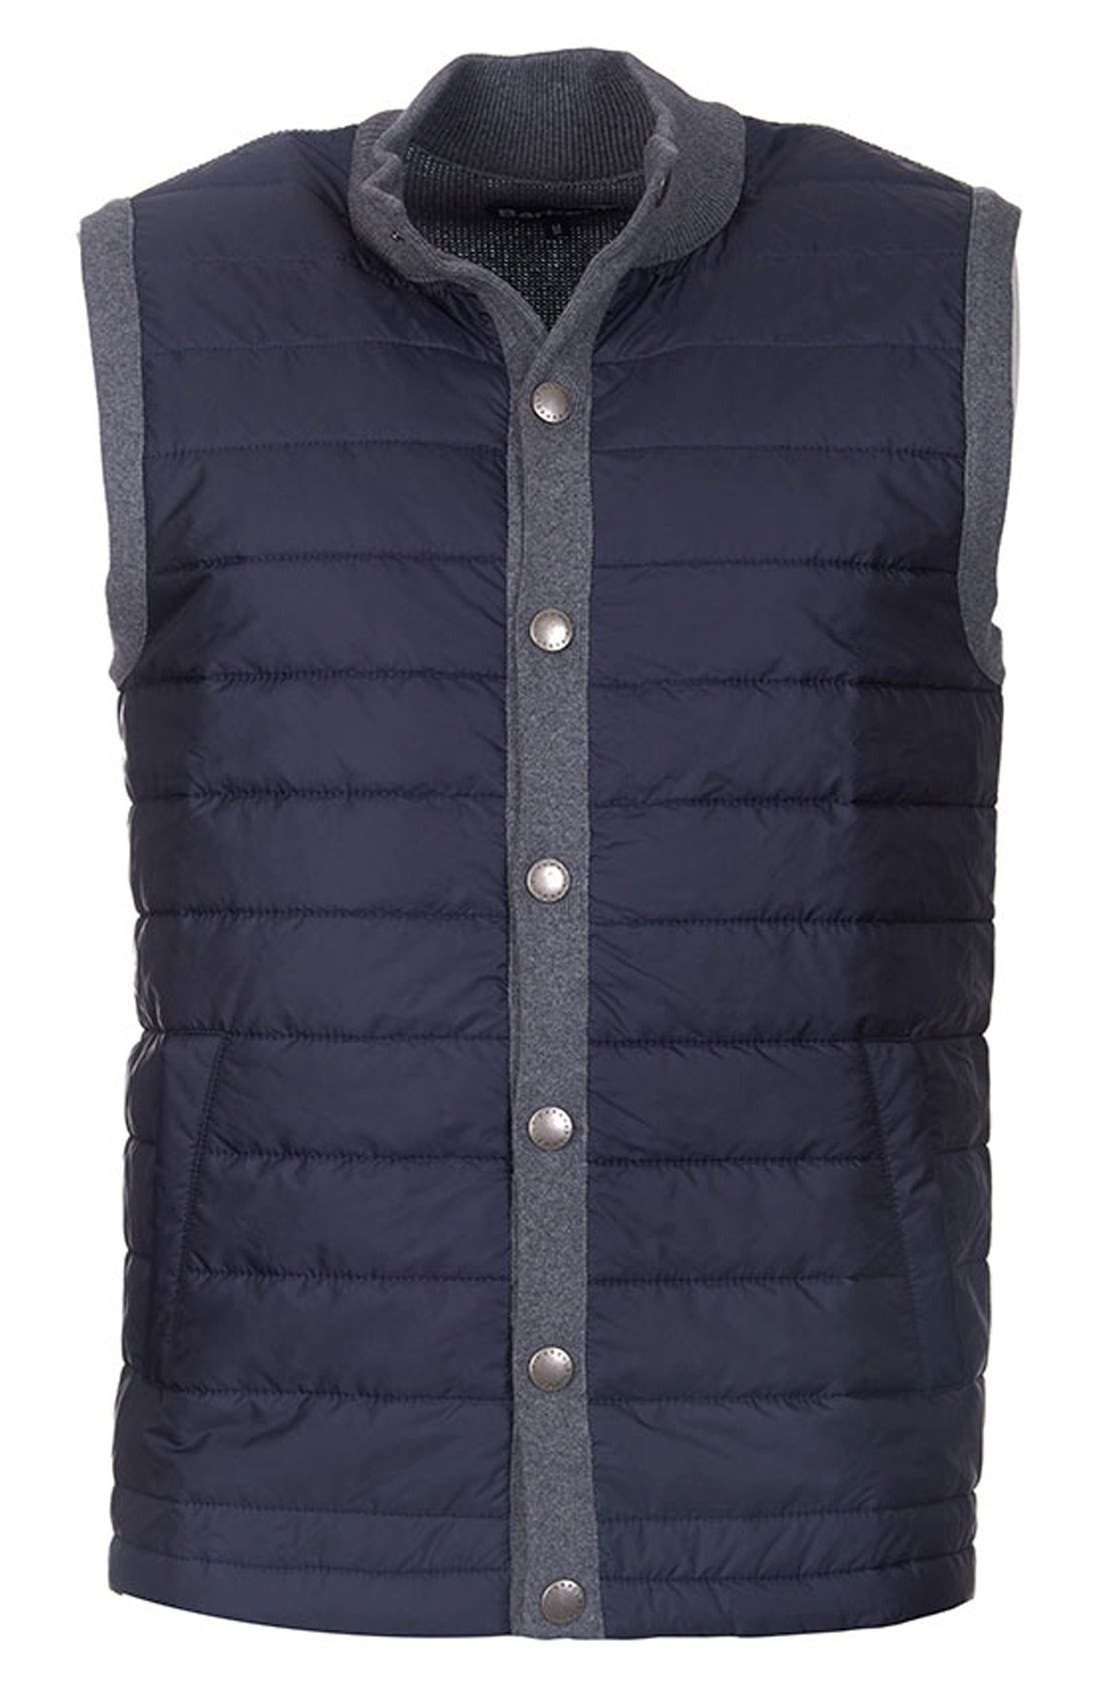 'Essential' Tailored Fit Mixed Media Vest,                             Alternate thumbnail 4, color,                             Mid Grey